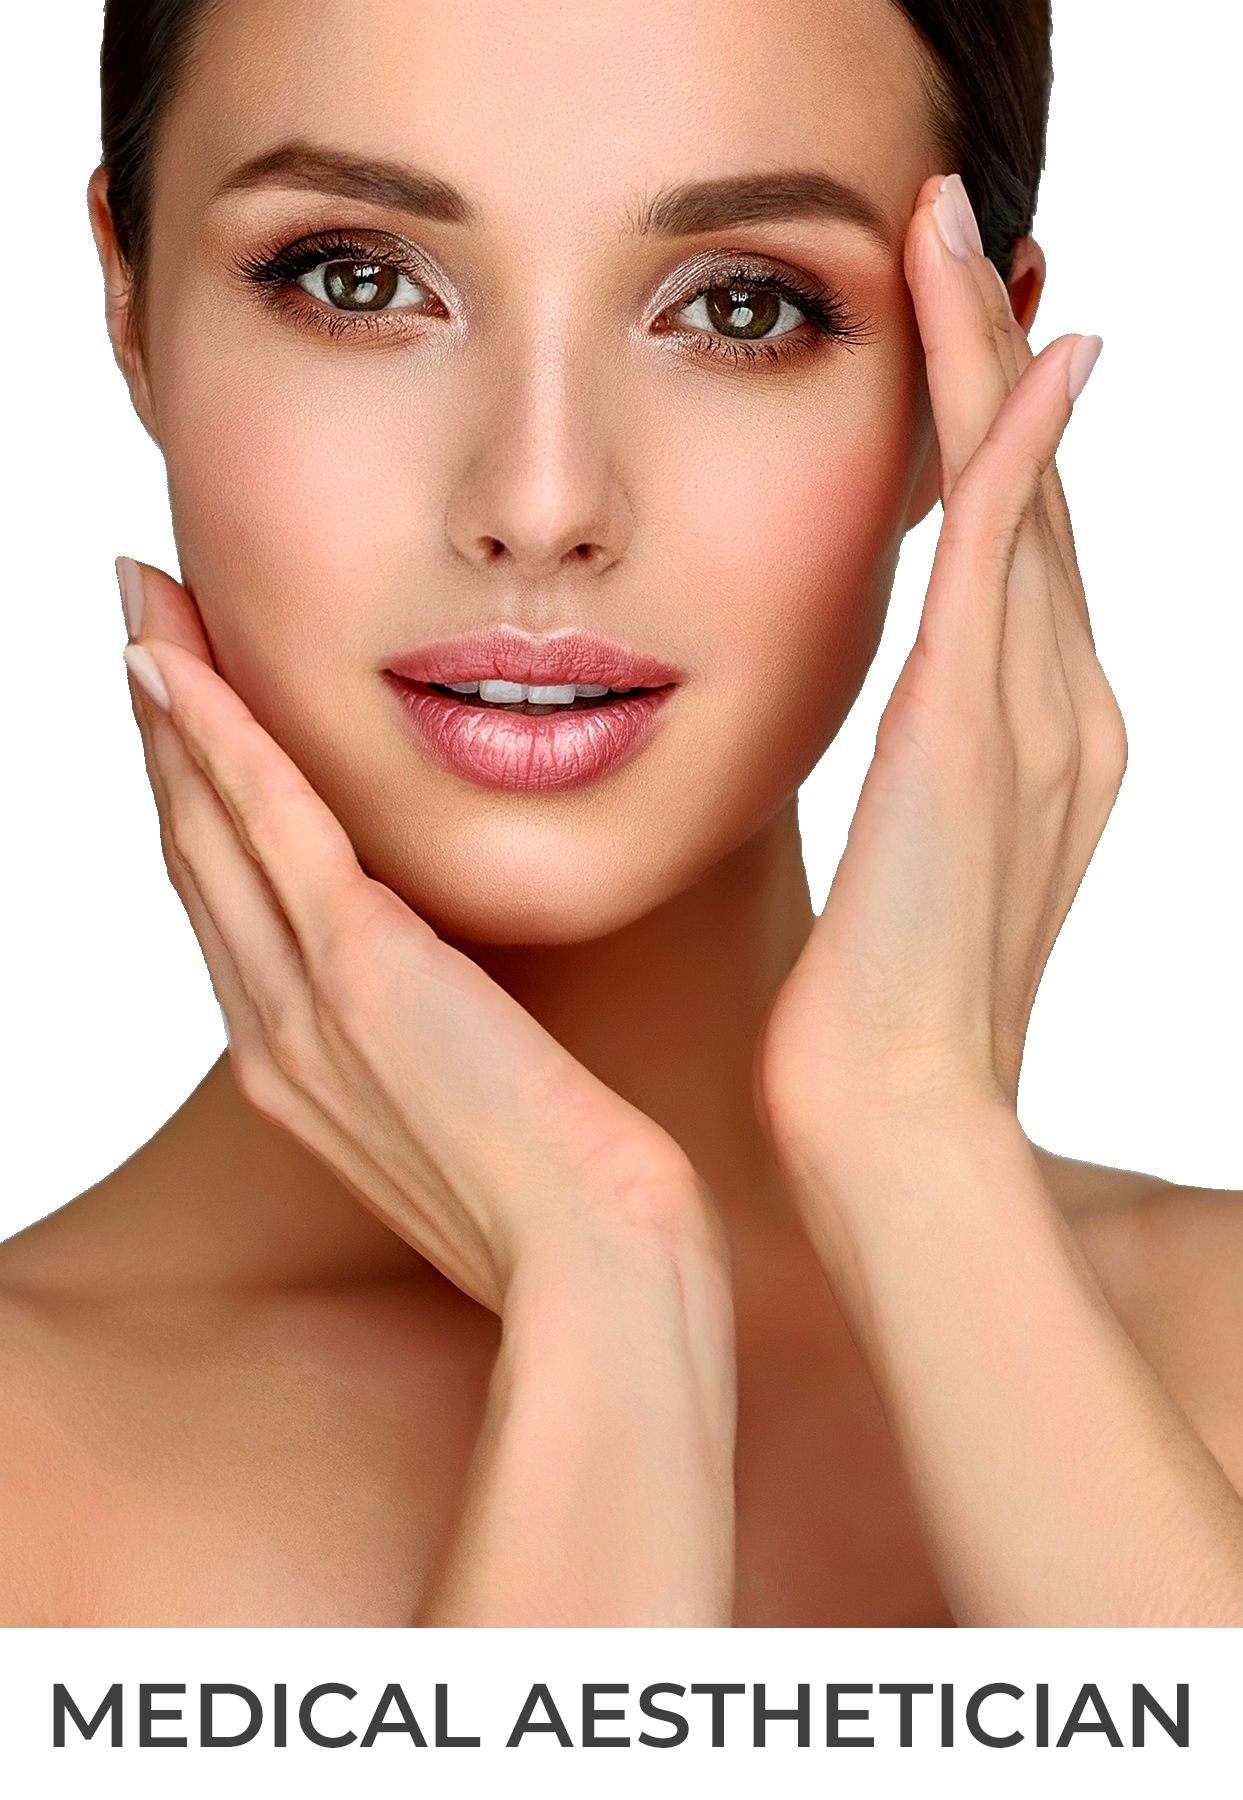 Medical Aesthetician | The Aesthetic Group